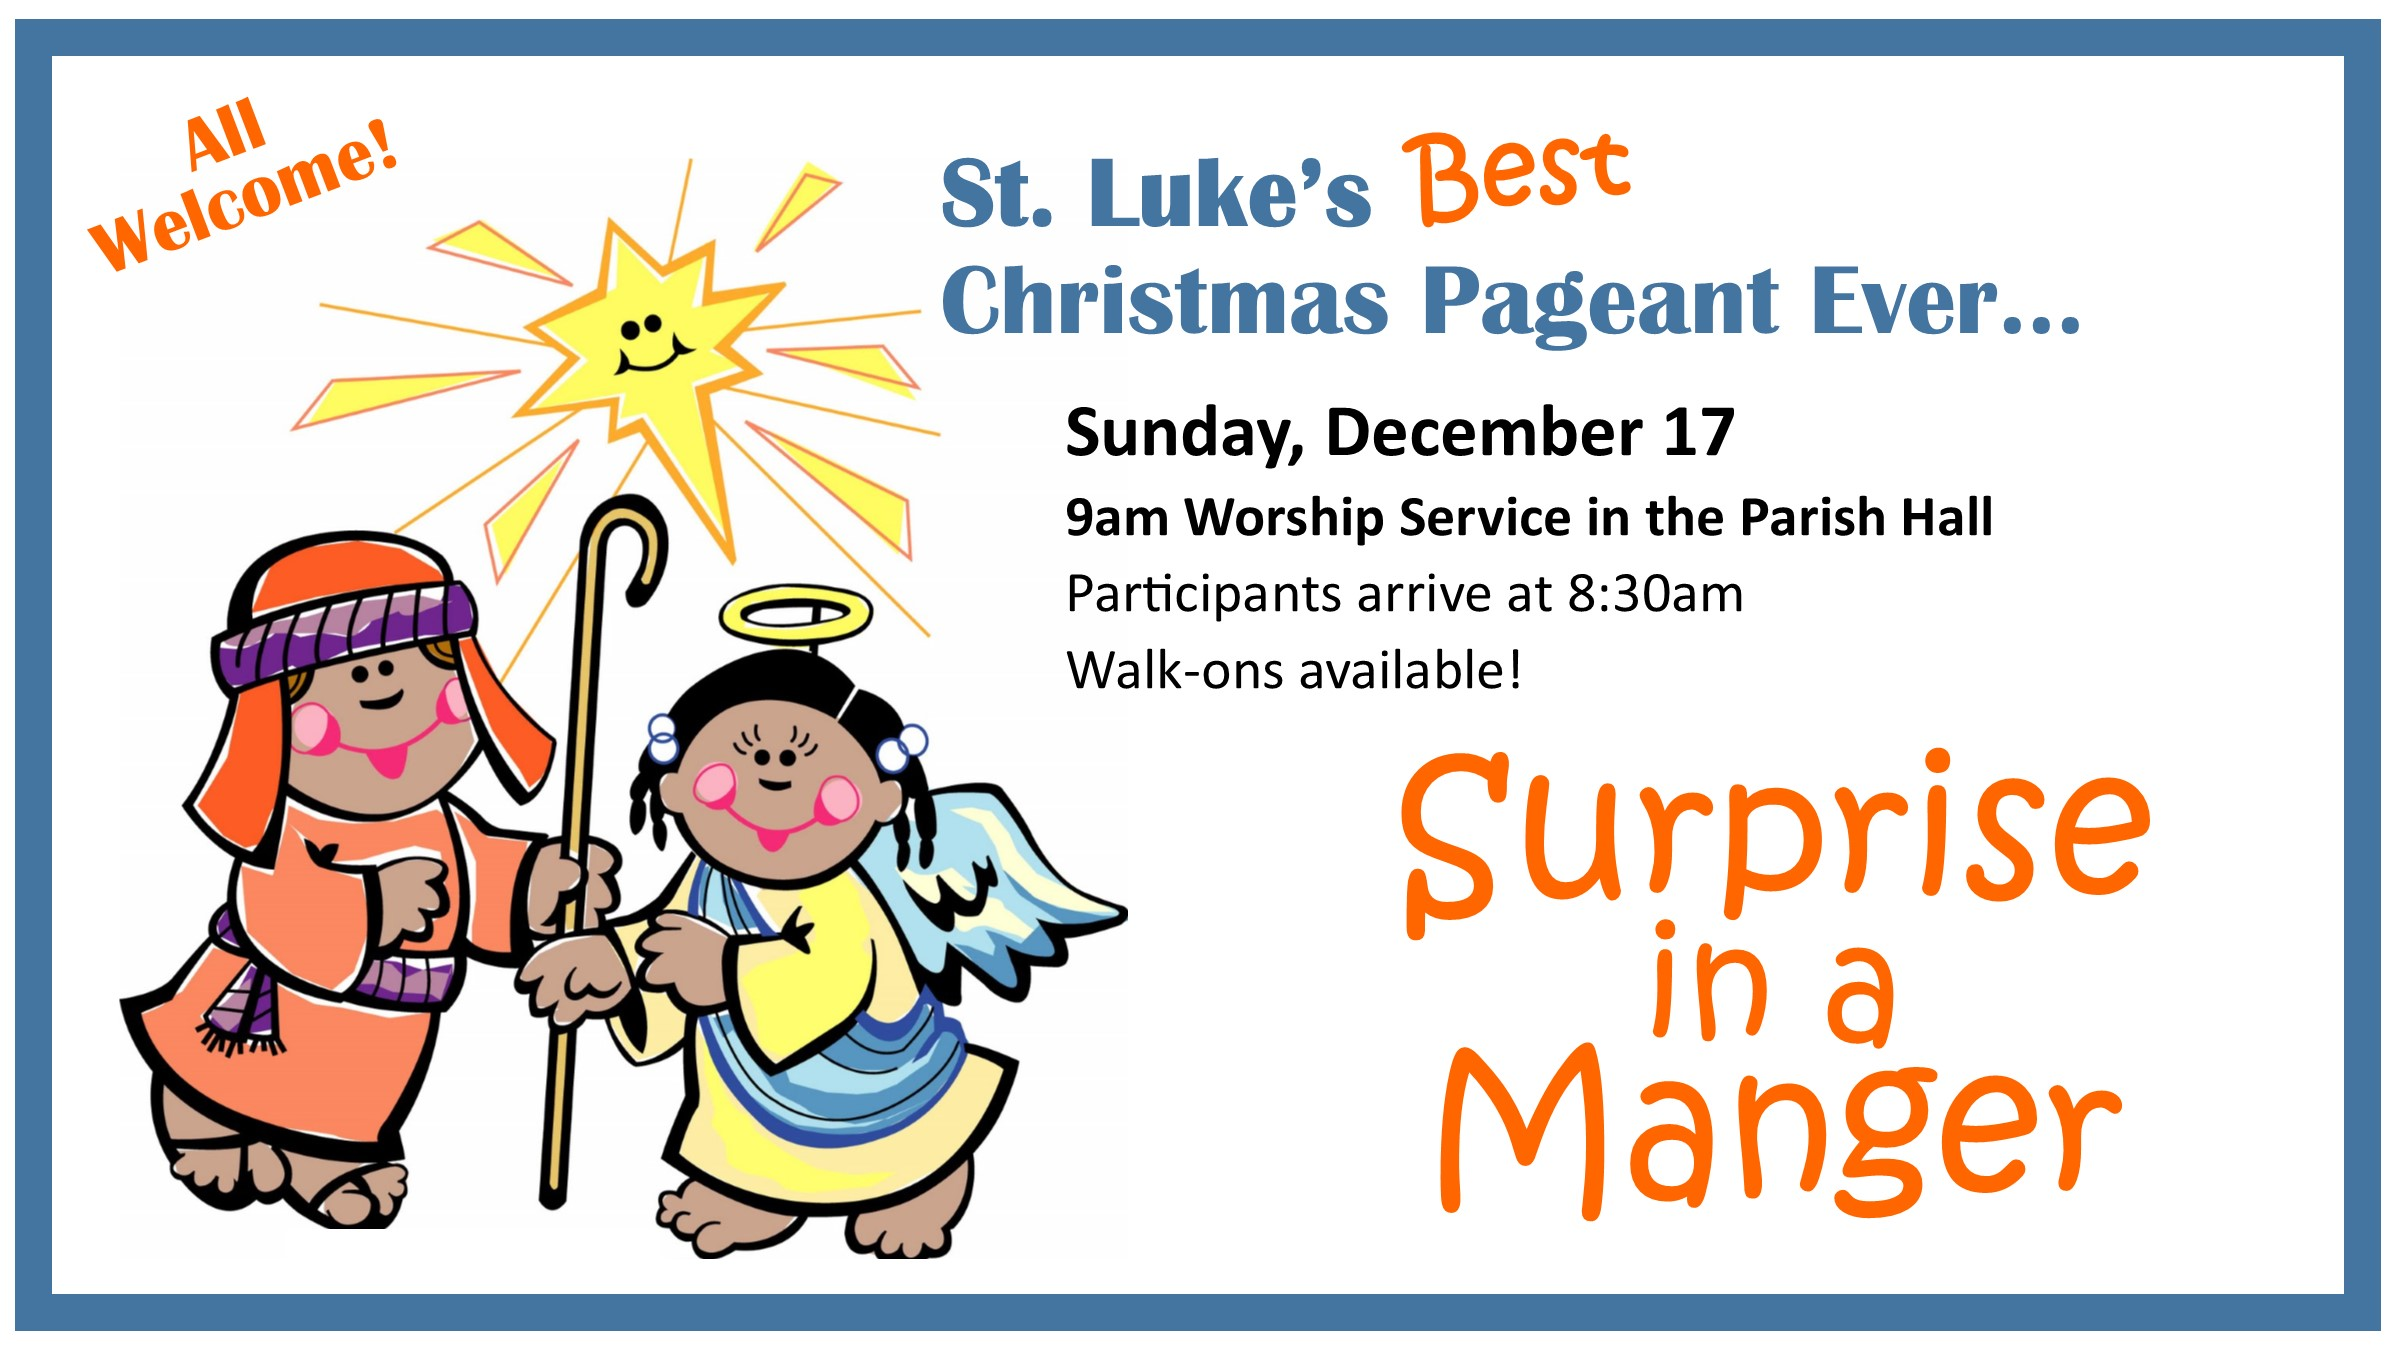 2017 Christmas Pageant poster 16x9.jpg